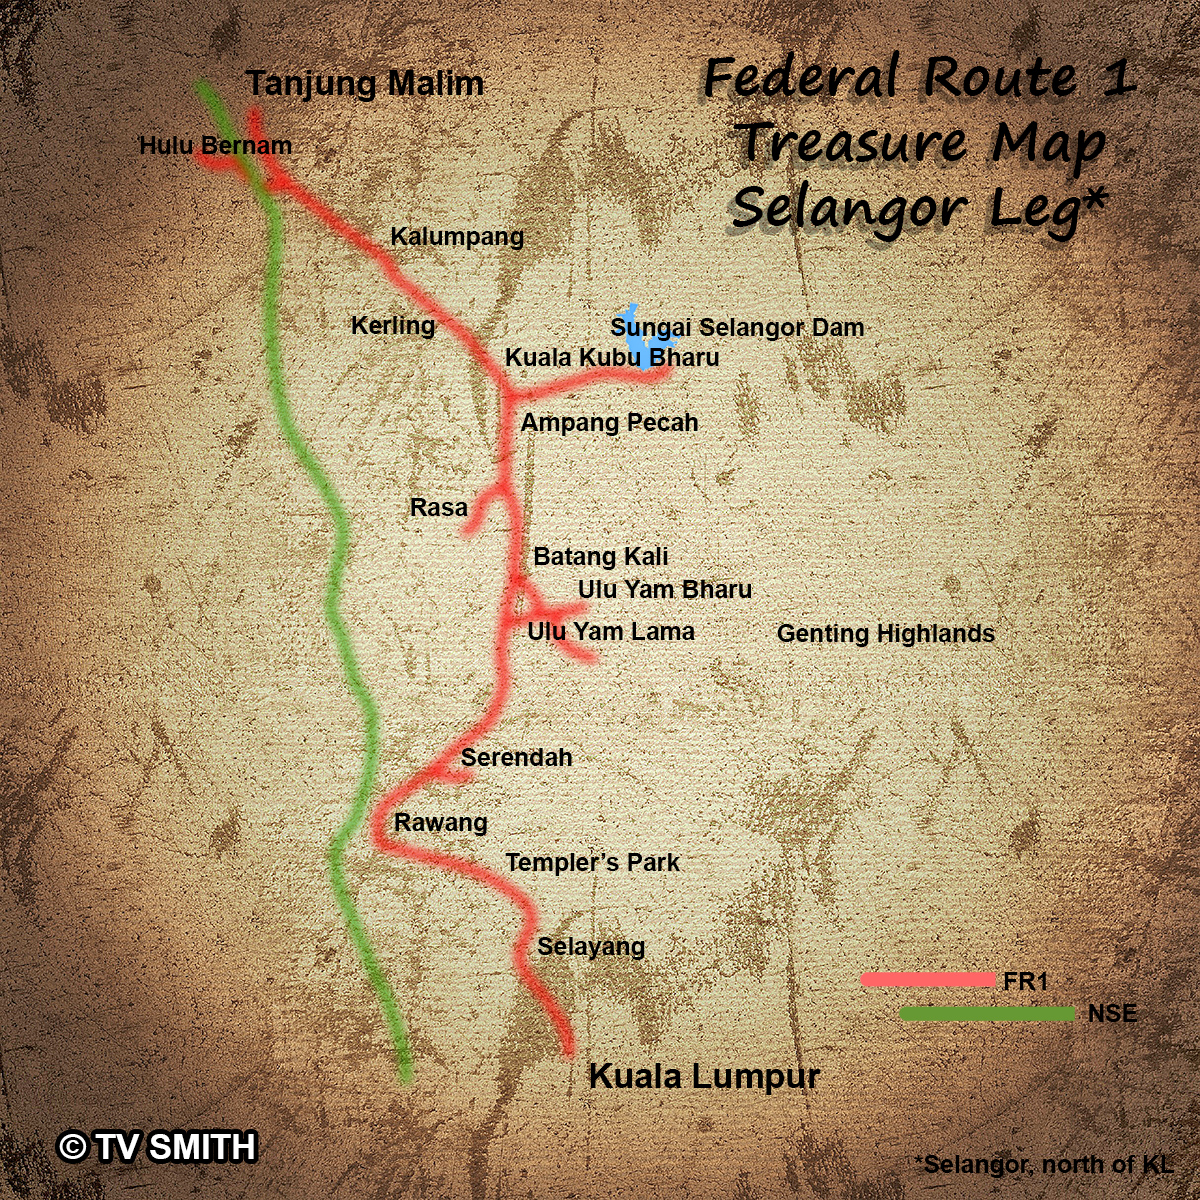 Map – Federal Route 1, North of KL